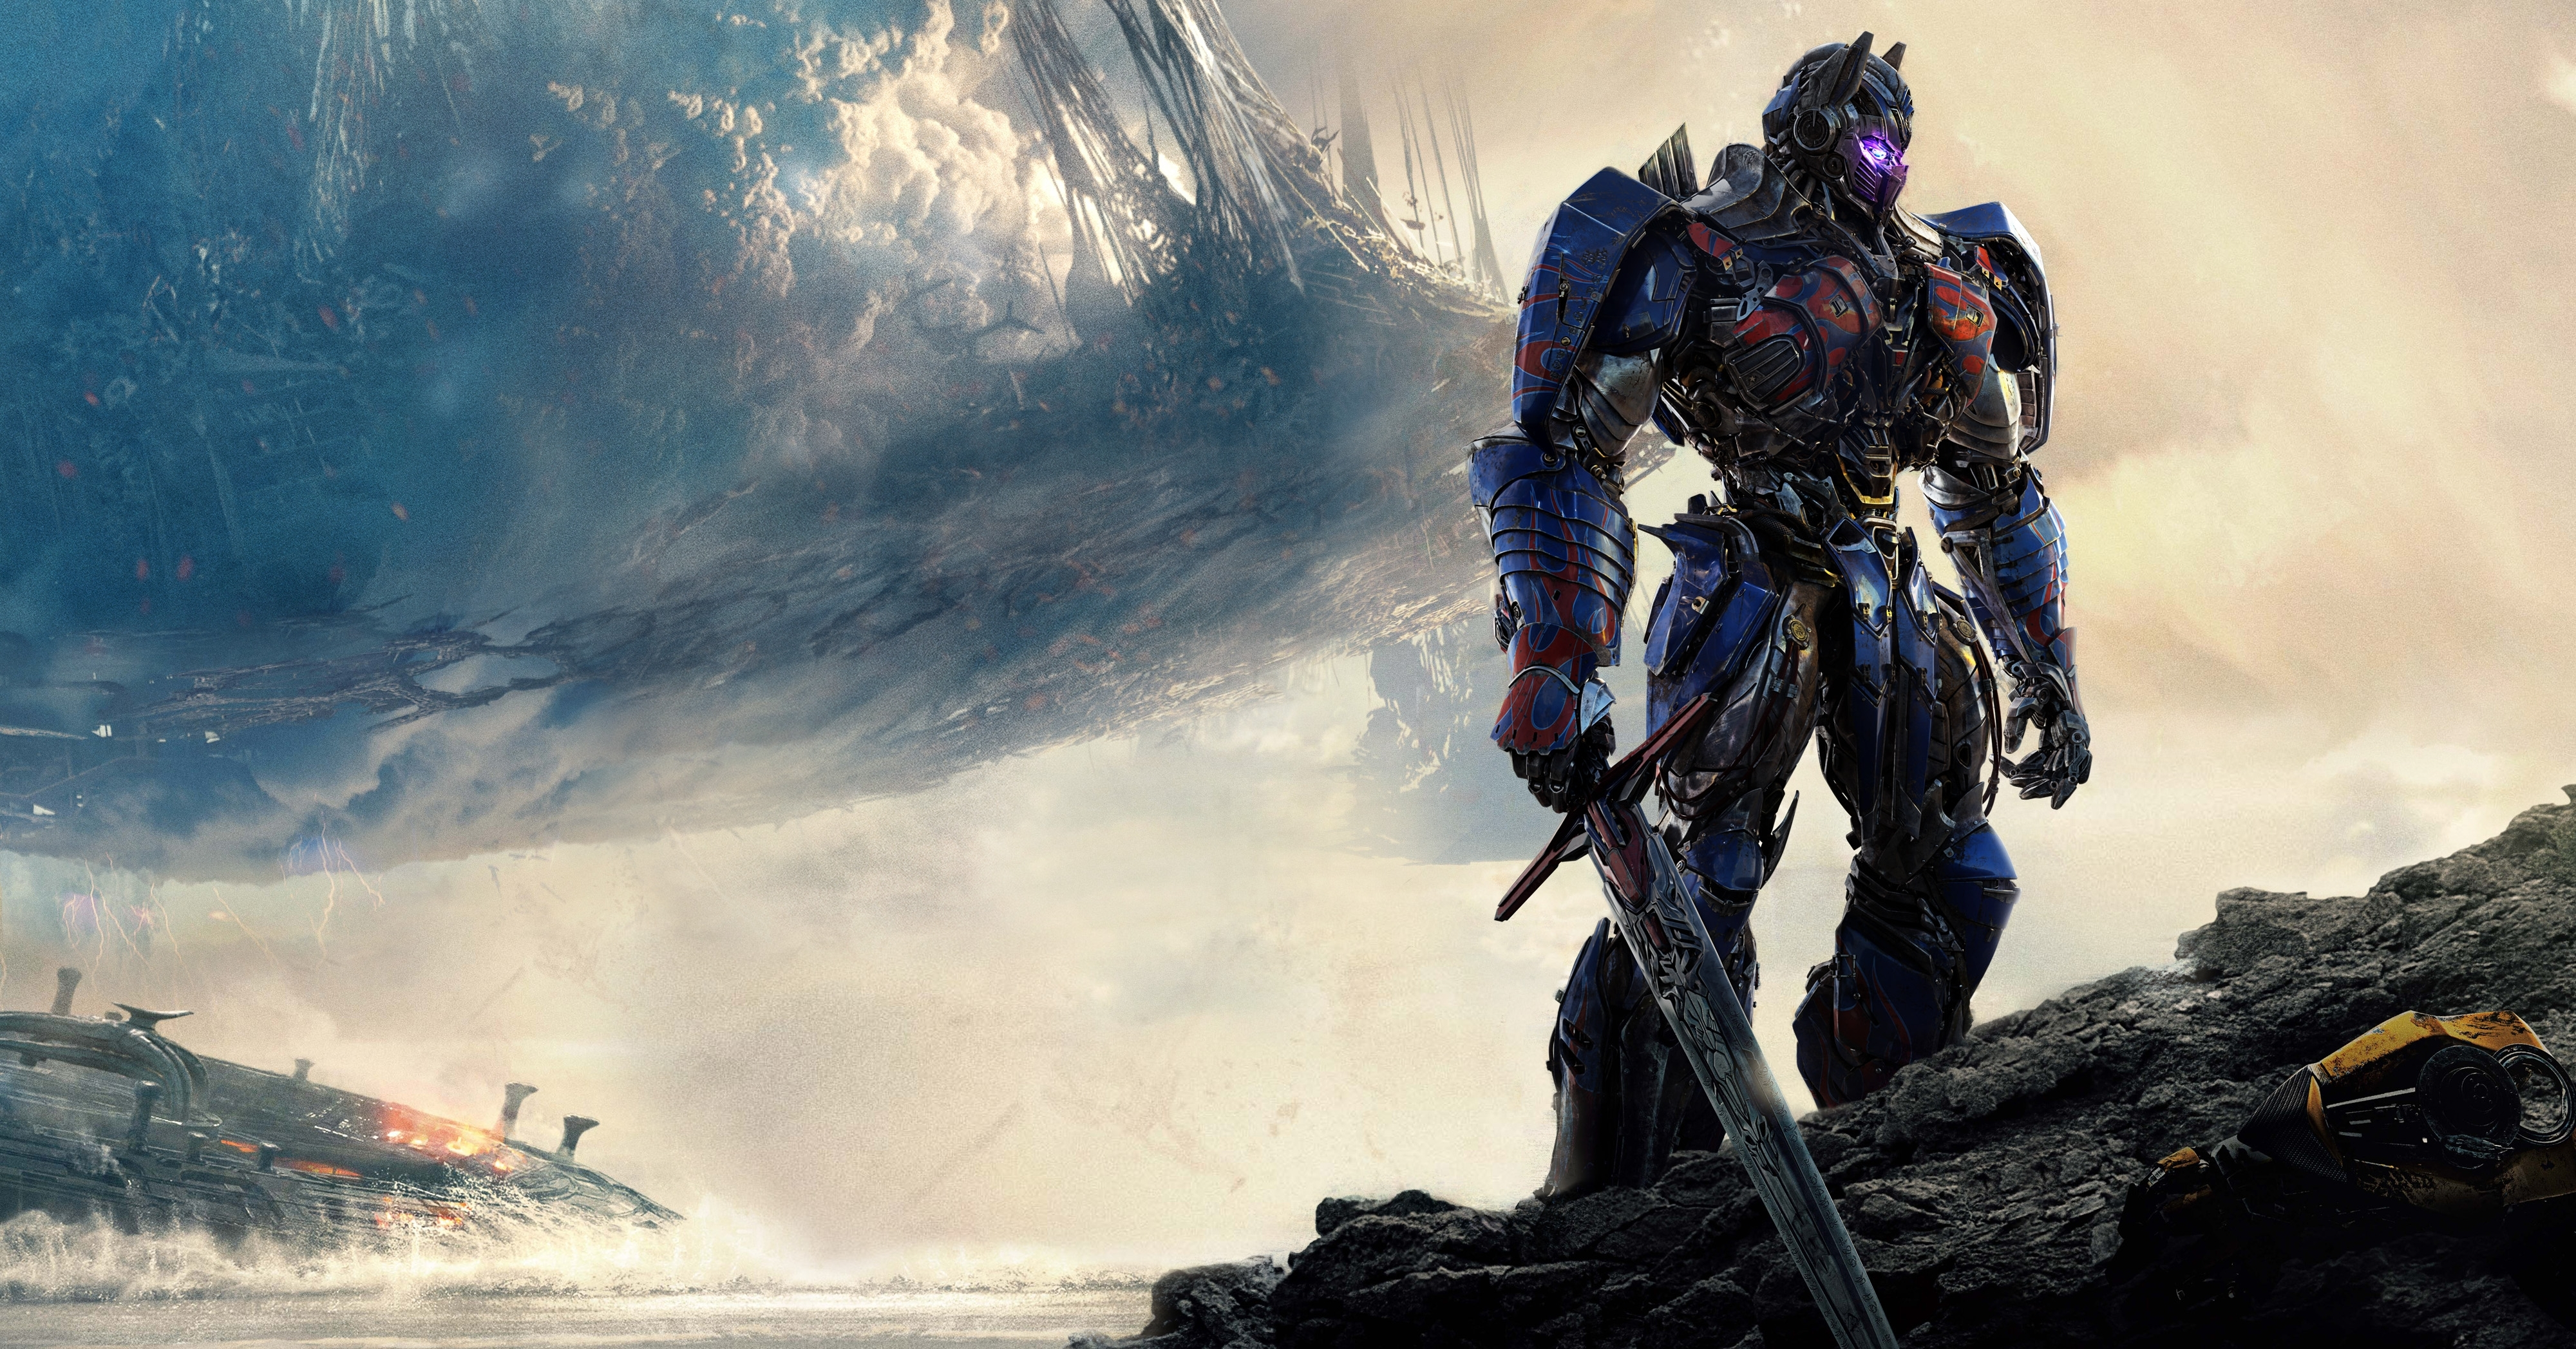 download 27 transformers: the last knight wallpapers